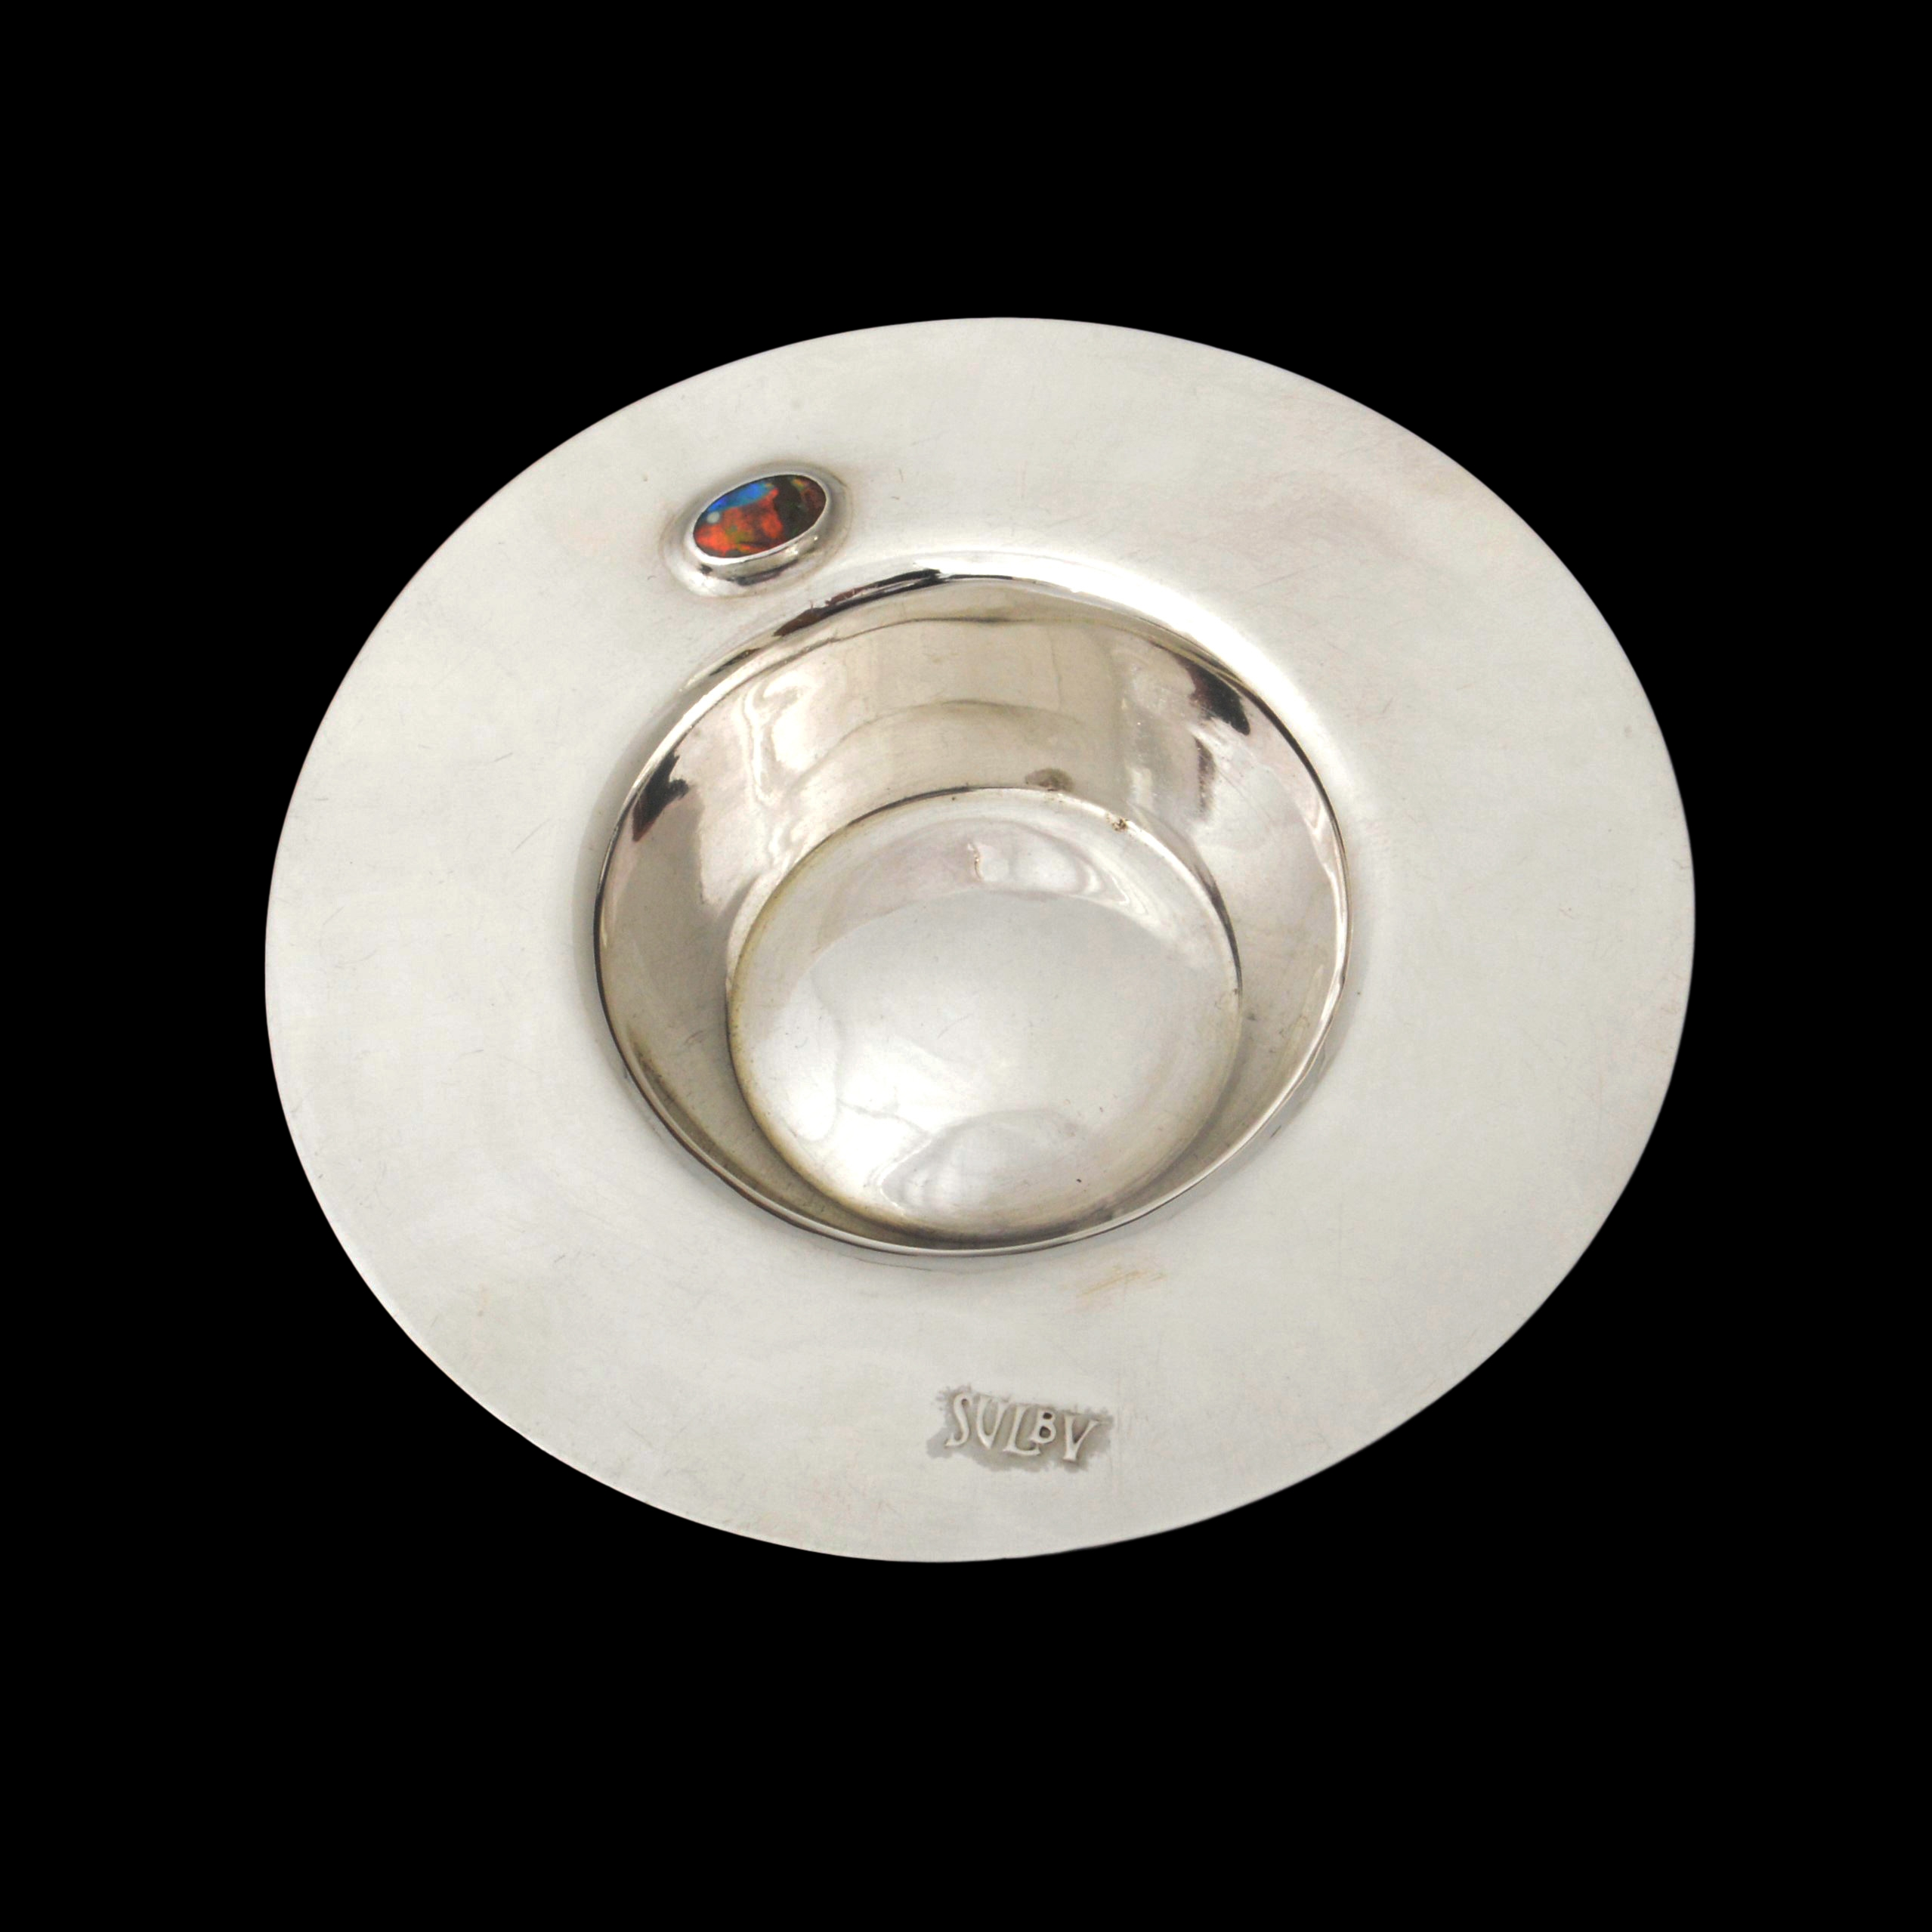 Archibald Knox Sulby dish